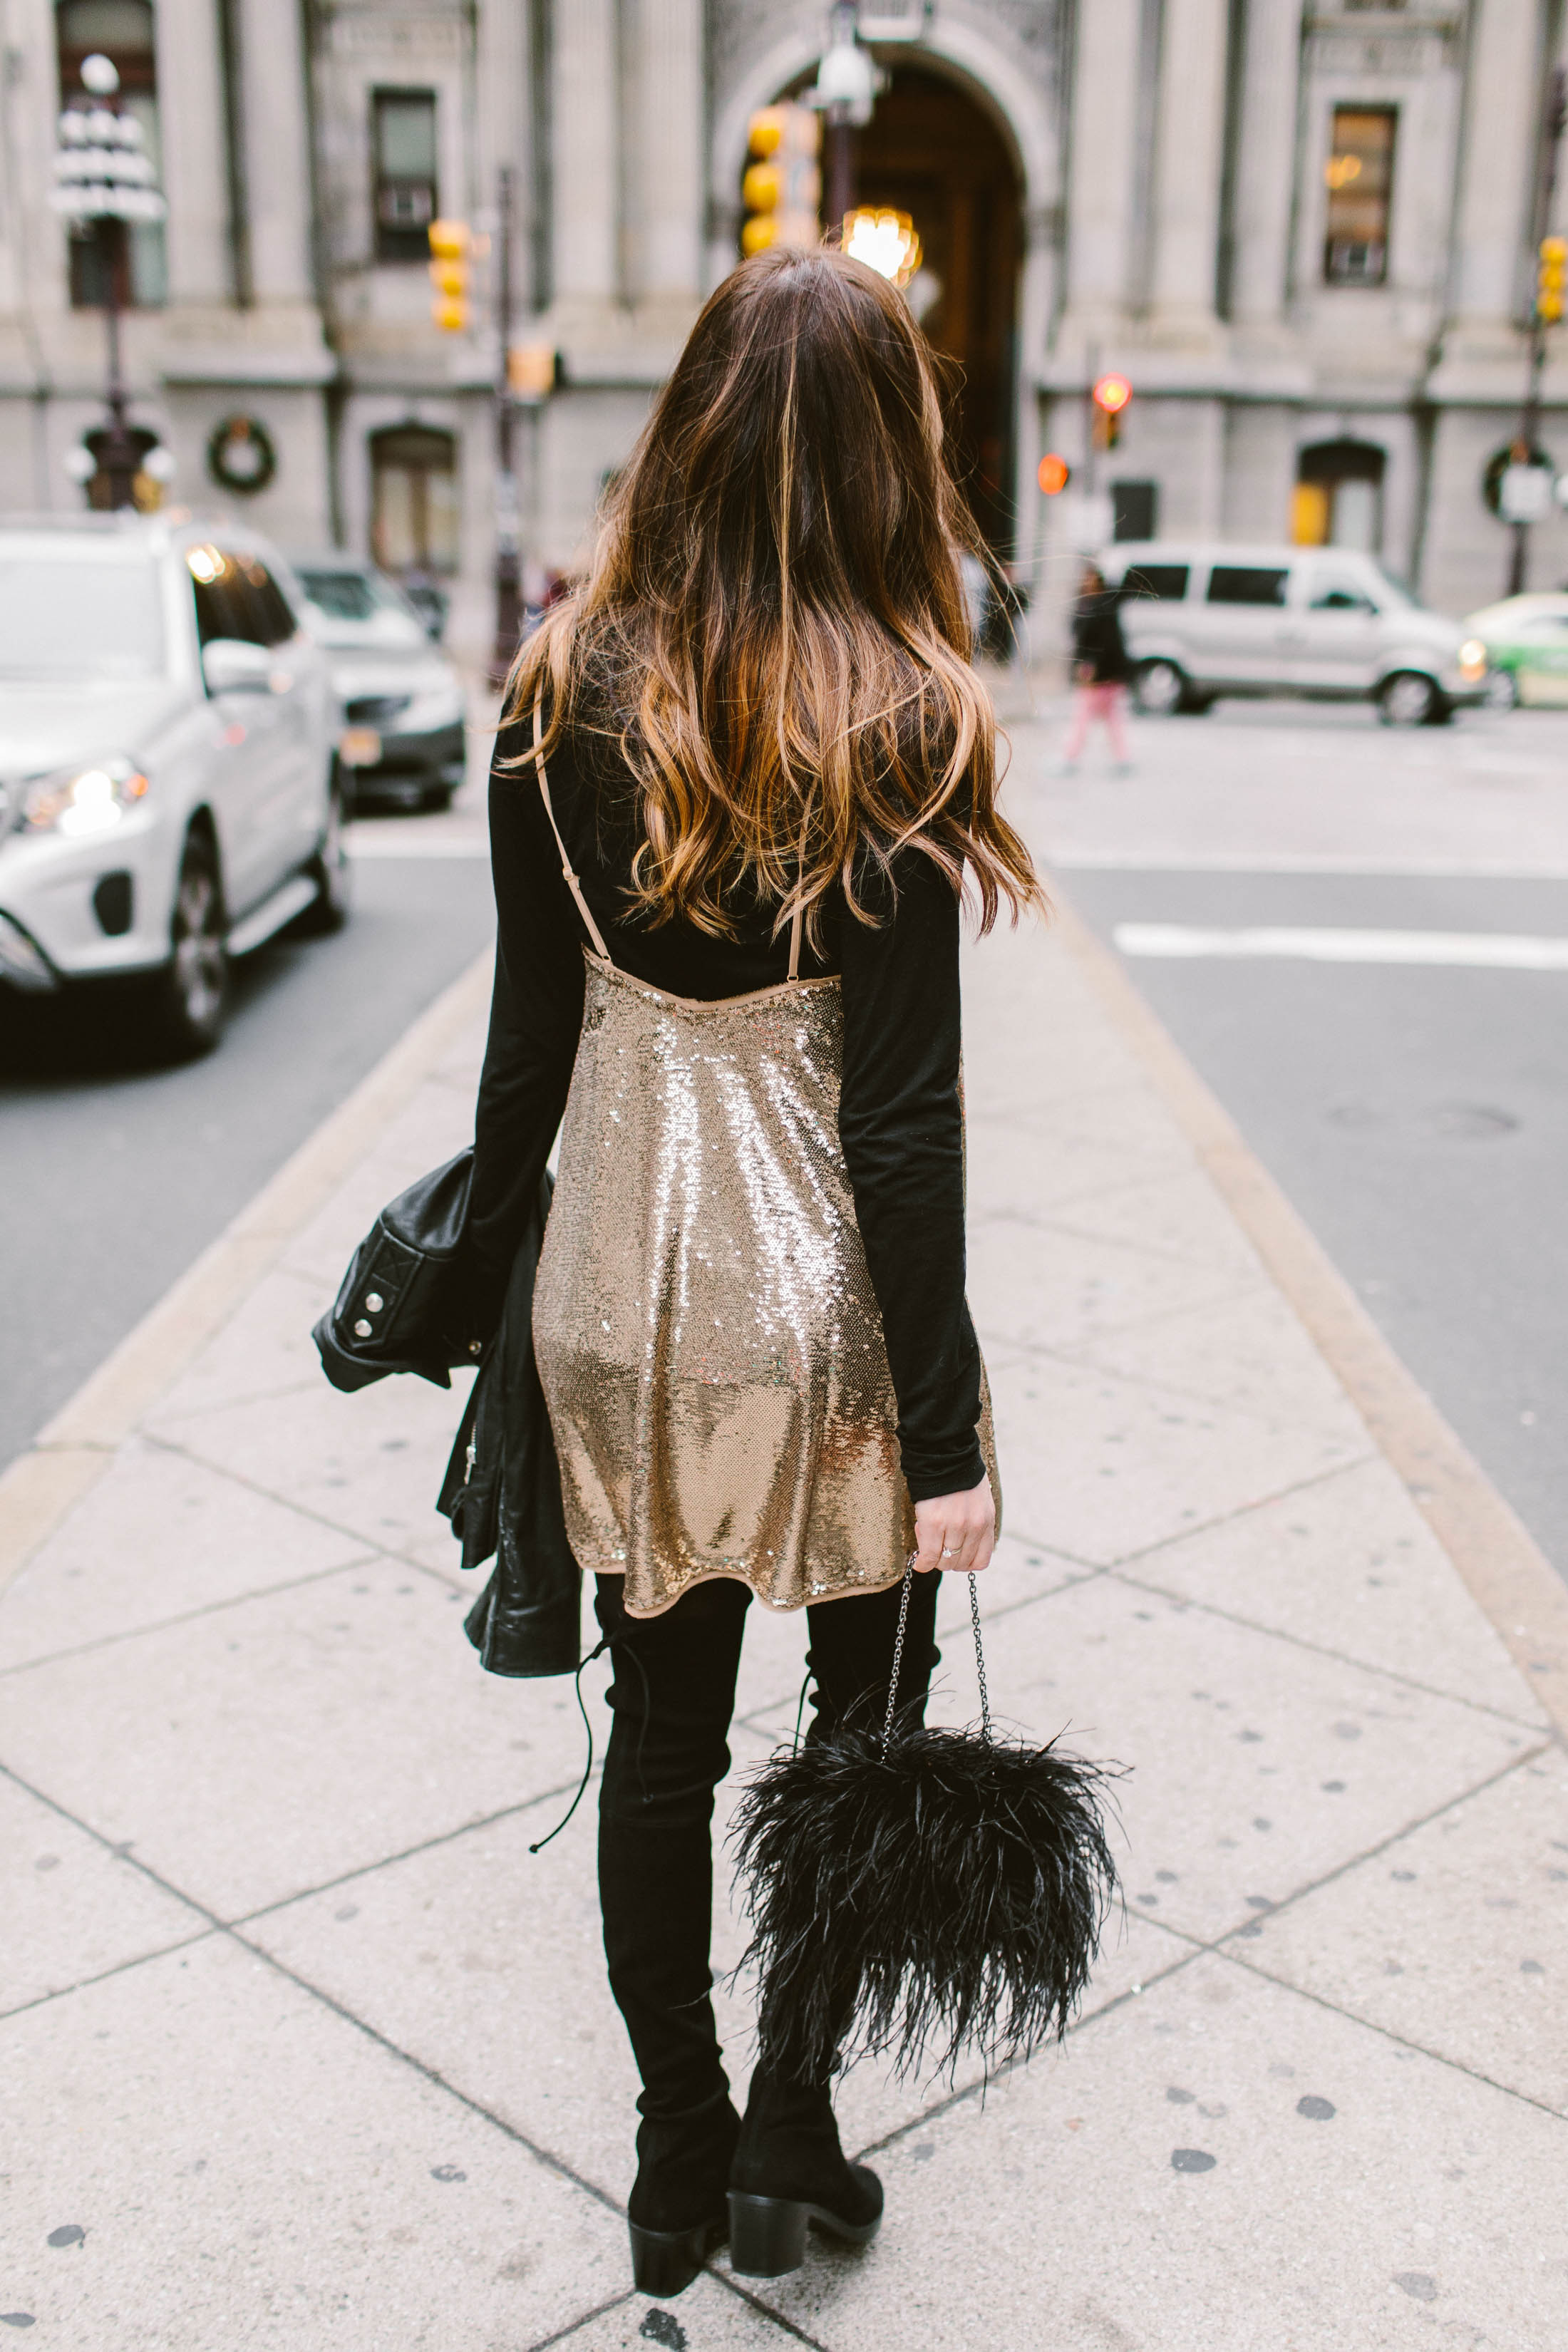 Bodycon dresses, shiny pants & sequins. Whether you're gearing up for a holiday party, NYE, or just feel like being fancy (yet warm)...this is for you.